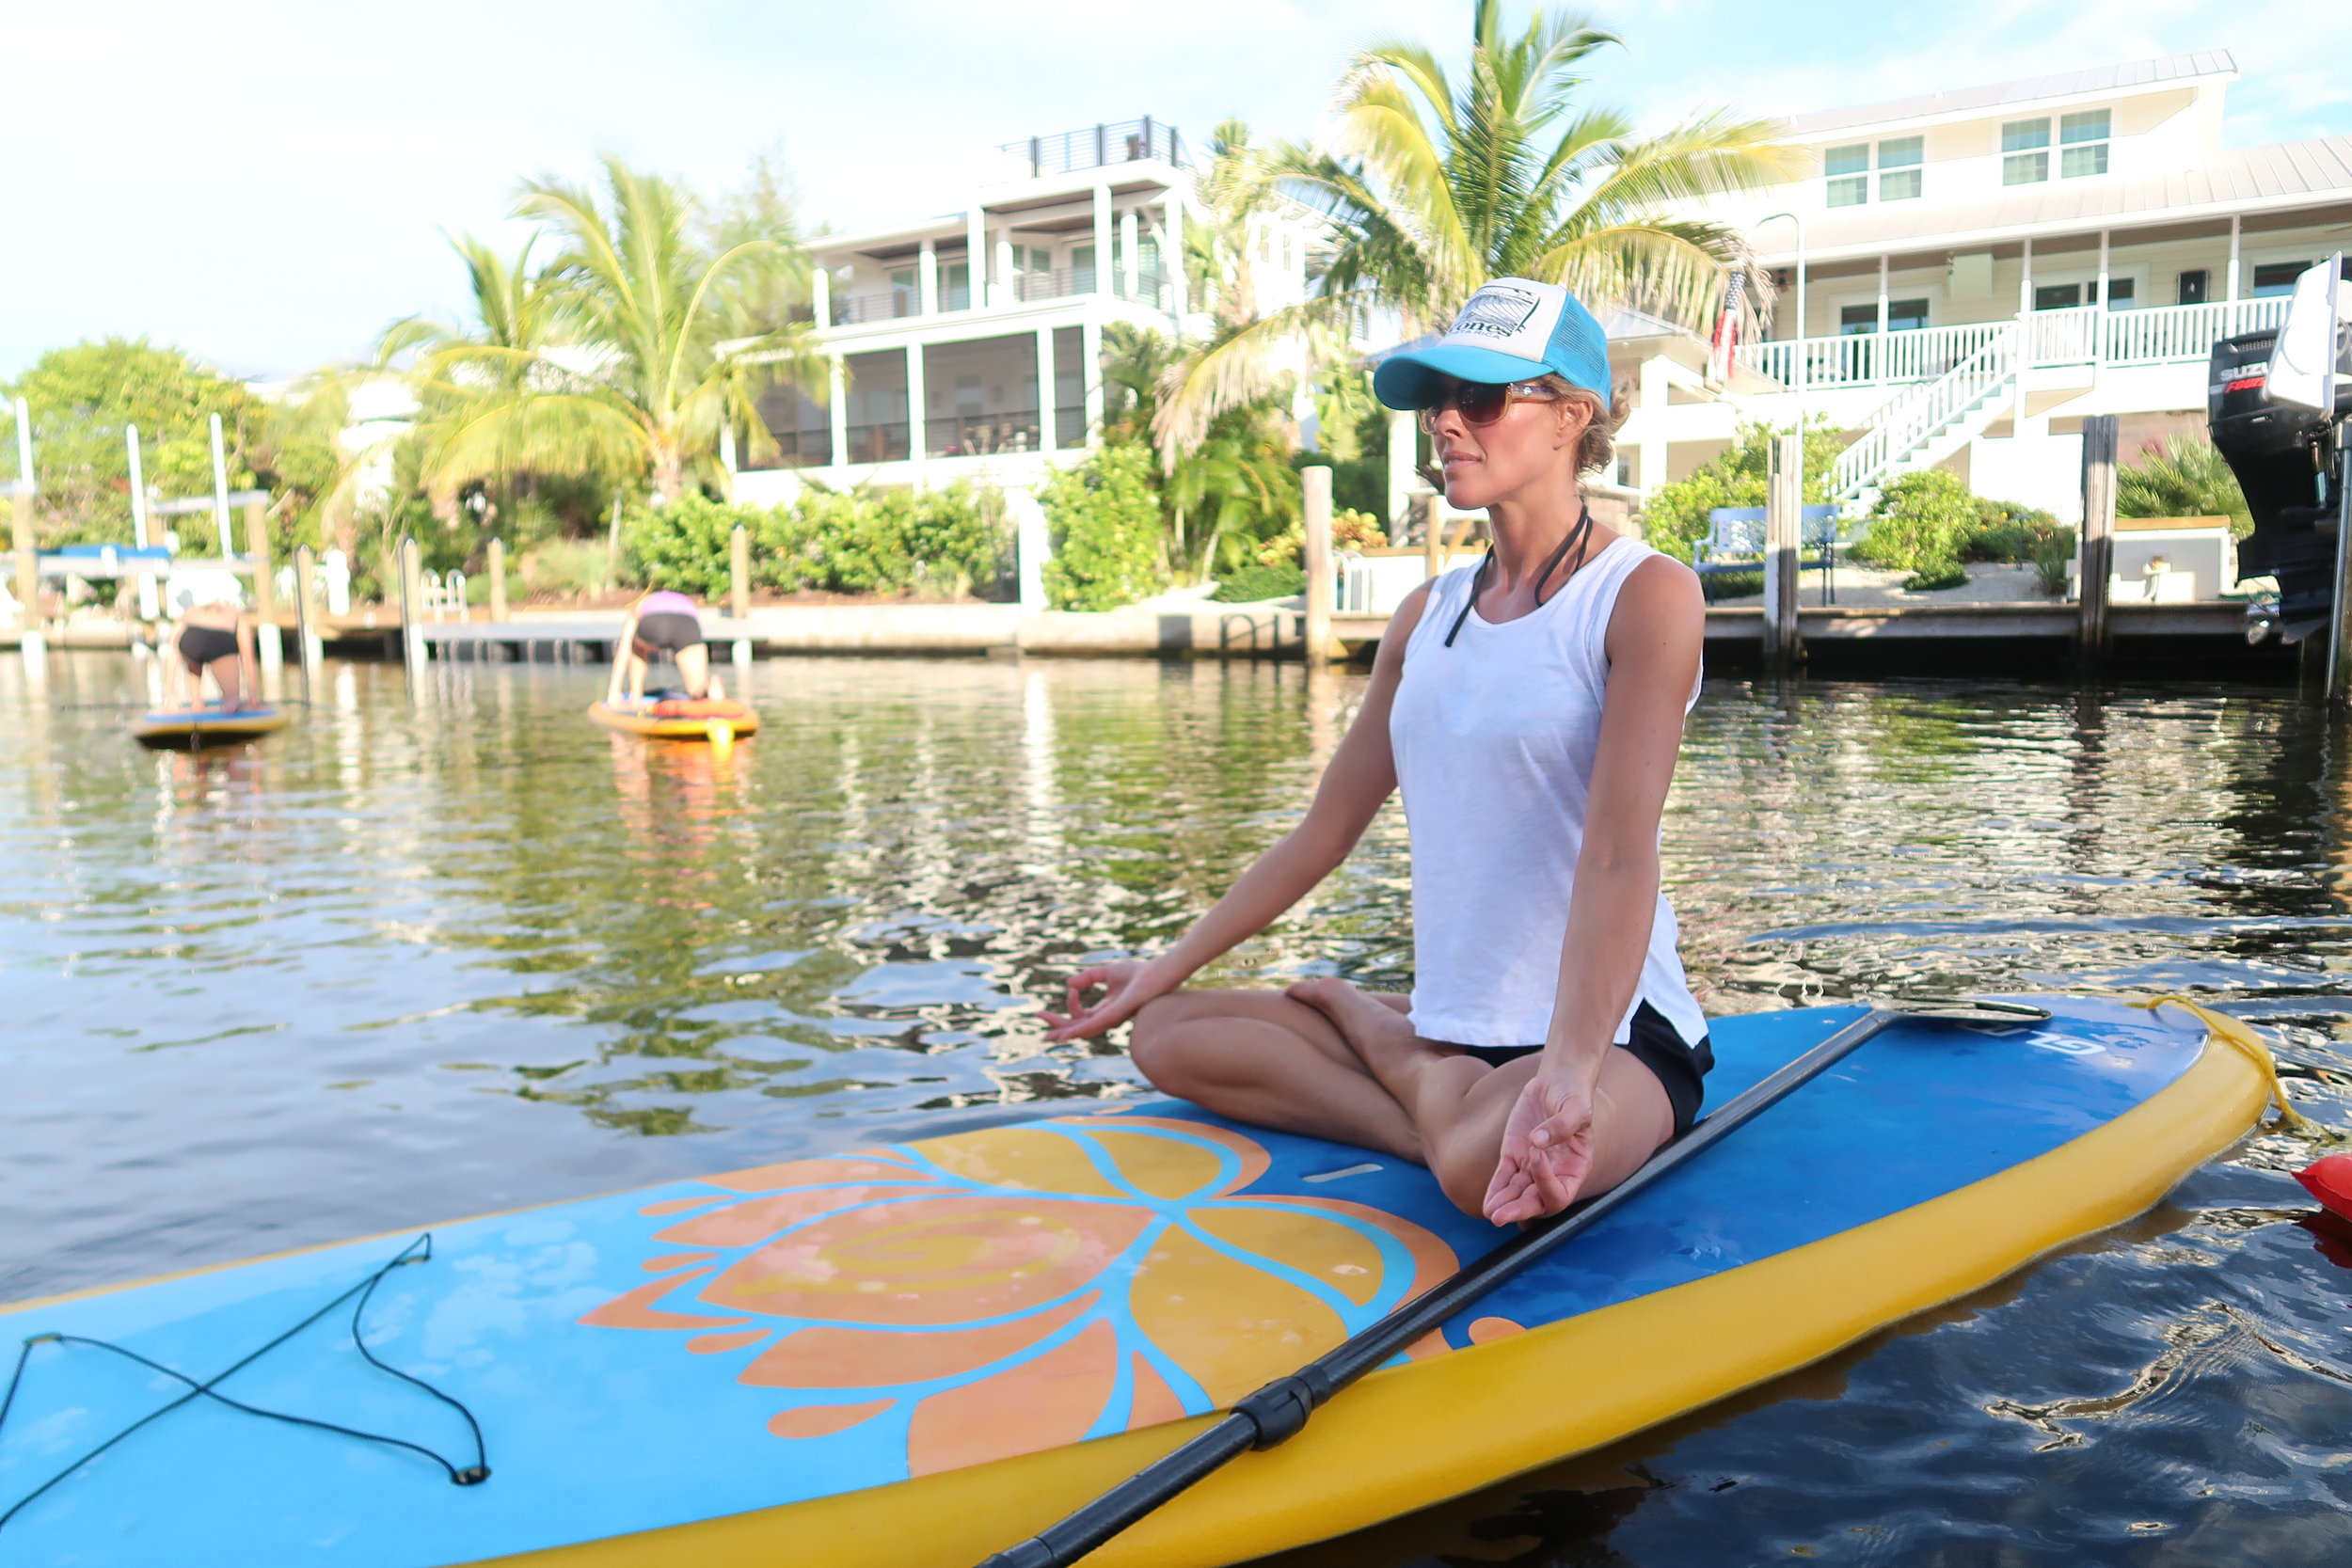 SUP Yoga on Anna Maria Island